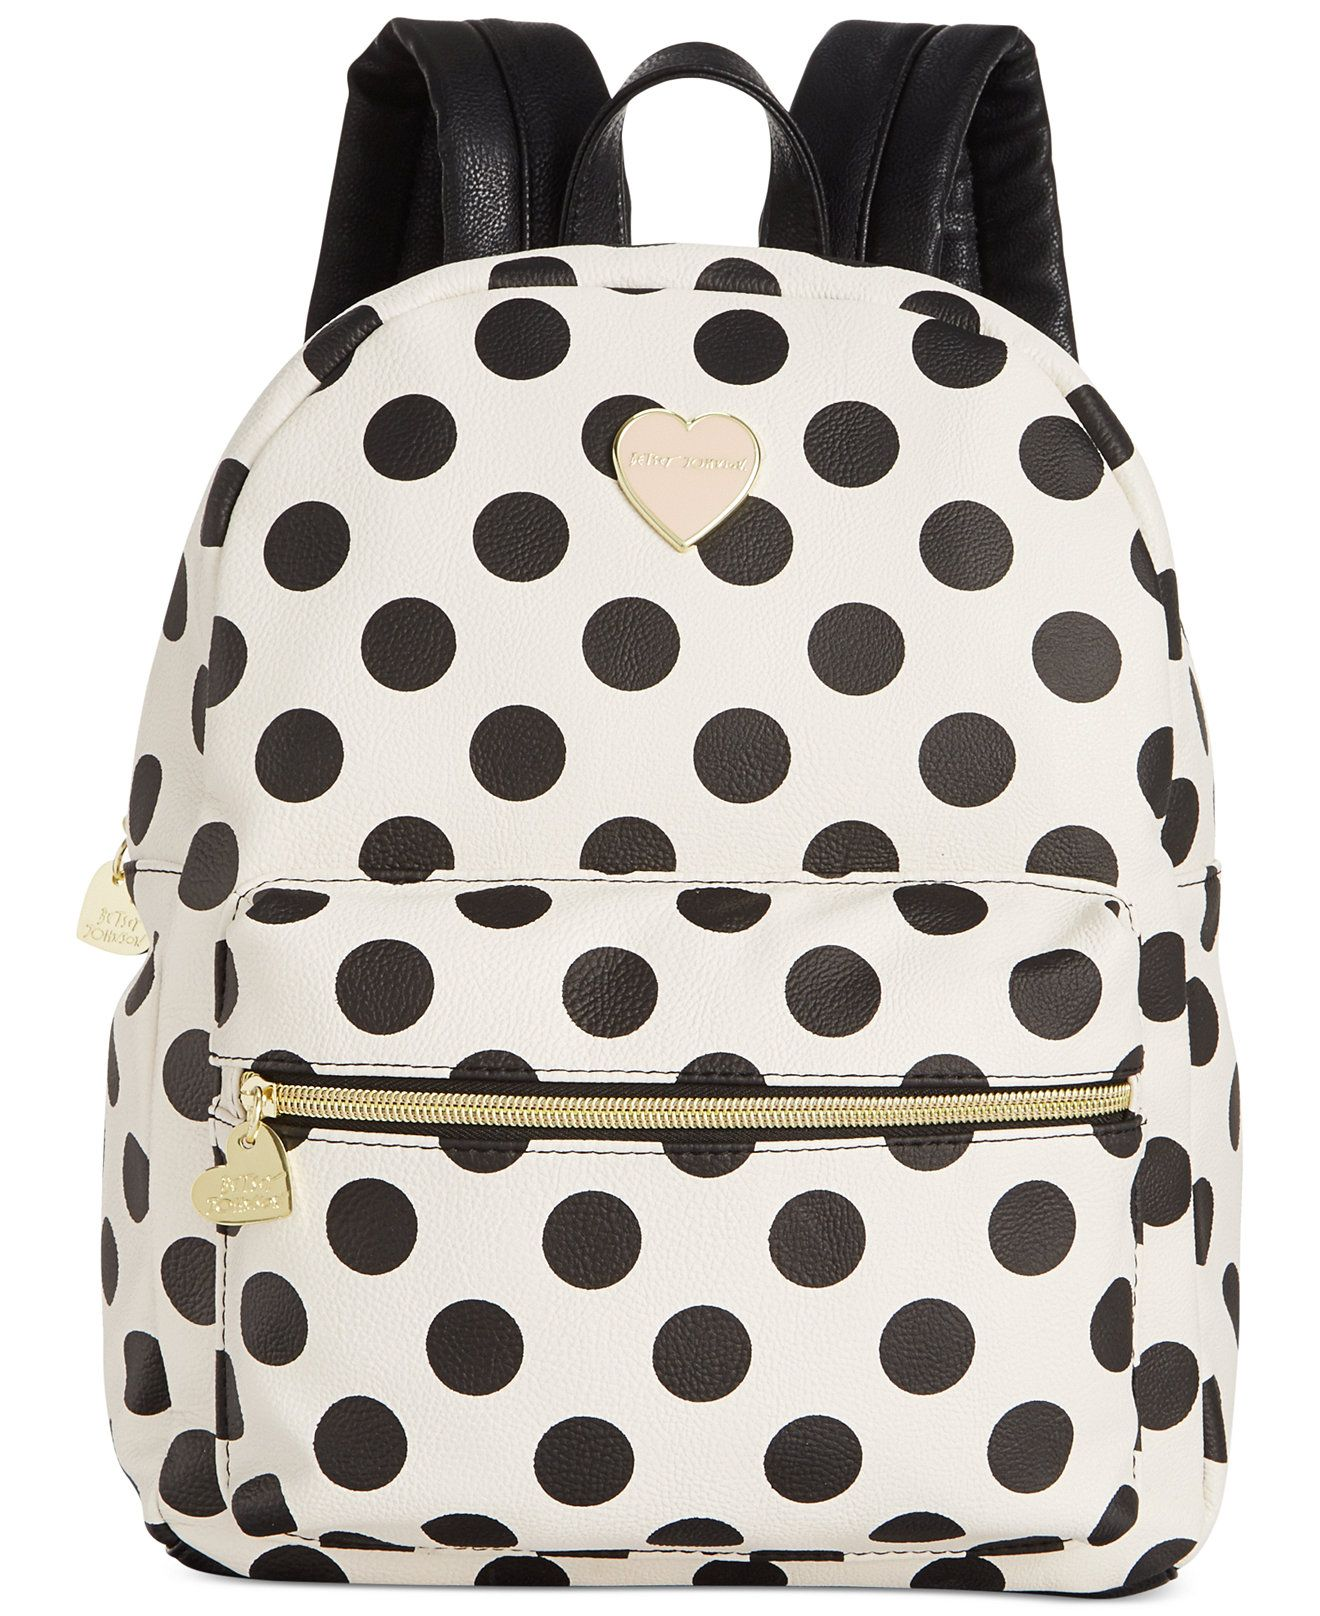 betsey johnson backpack backpacks handbags accessories